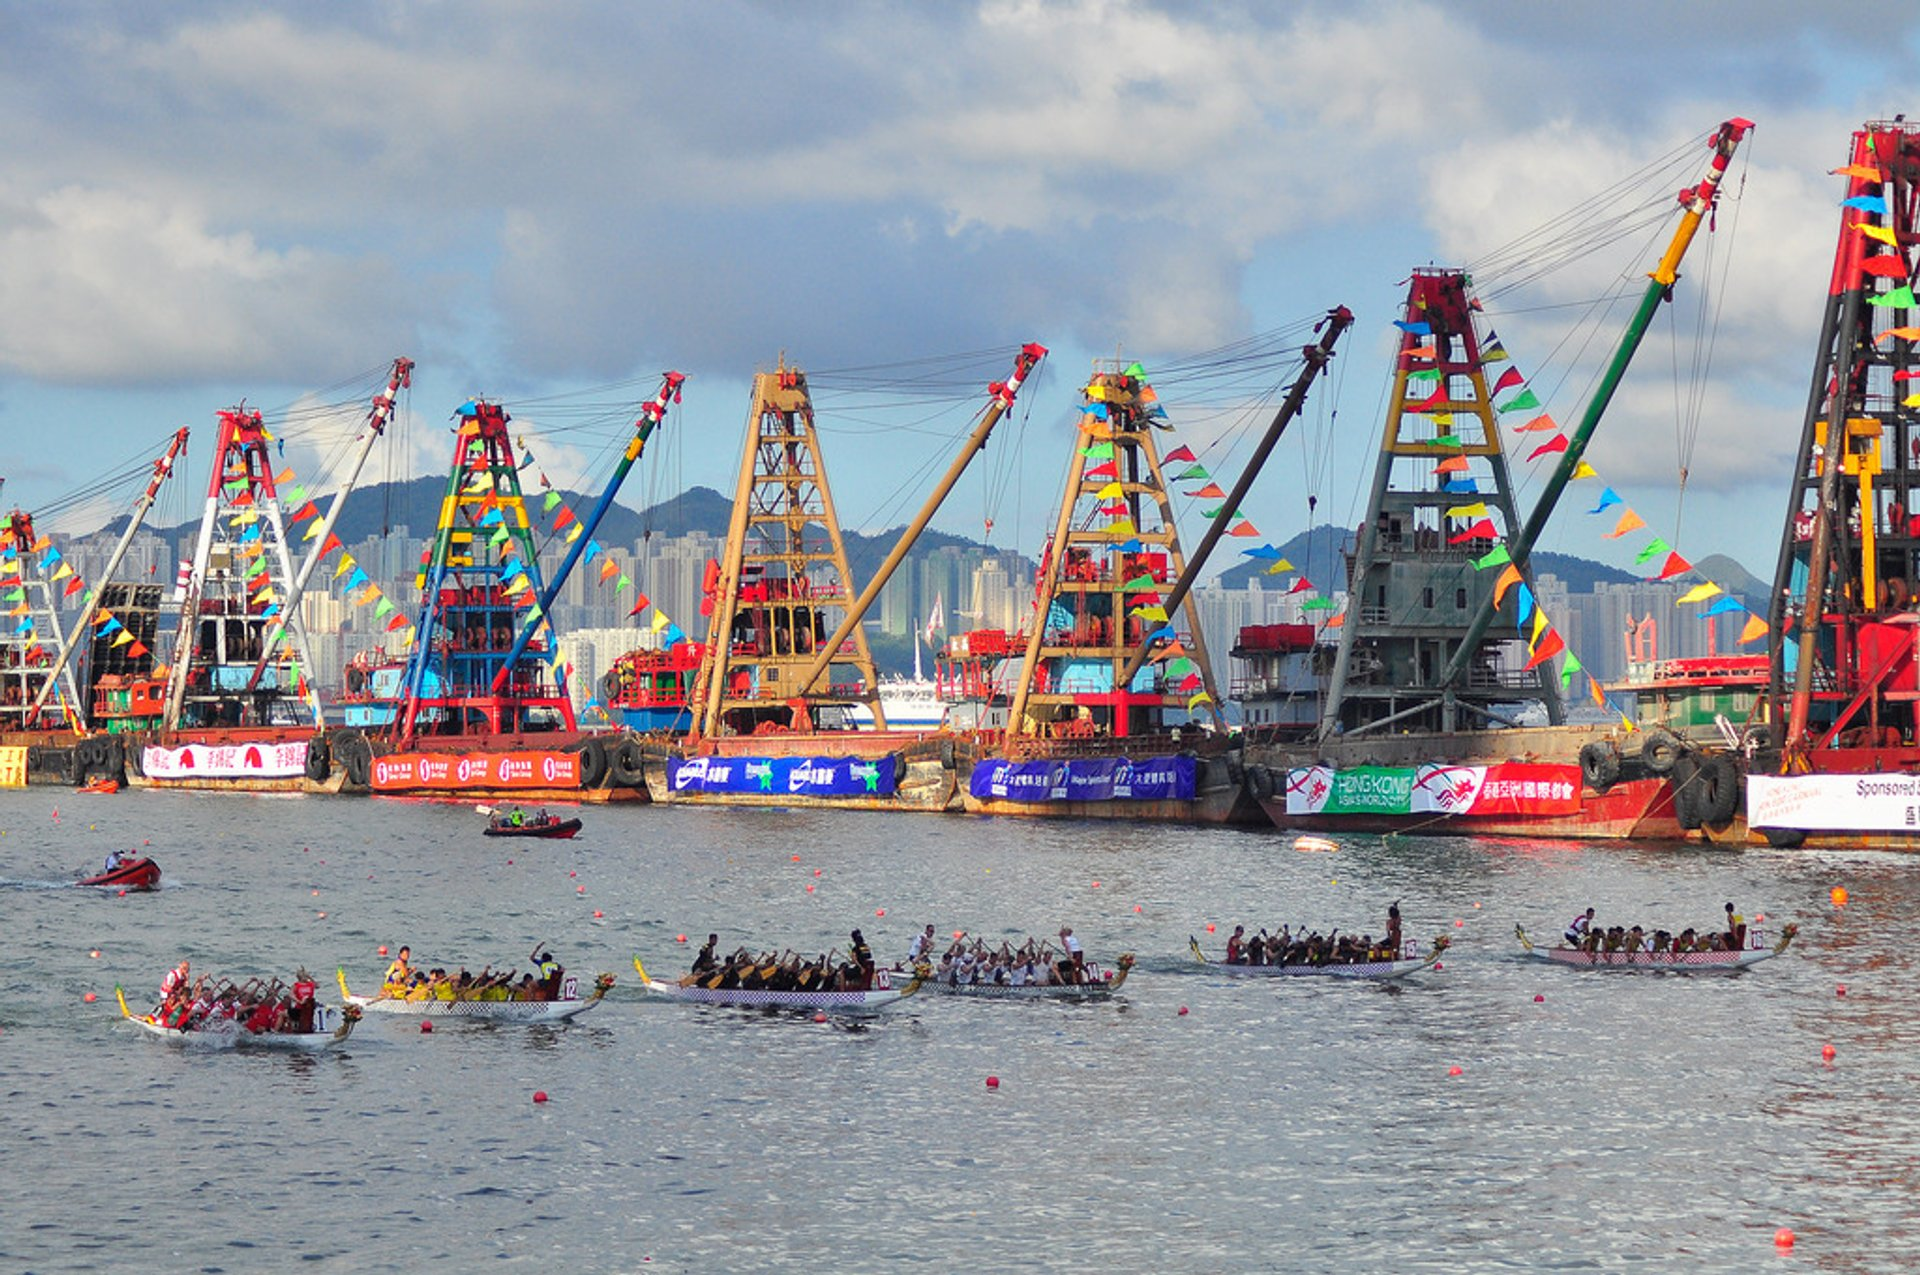 Dragon Boat Festival in Hong Kong 2020 - Best Time